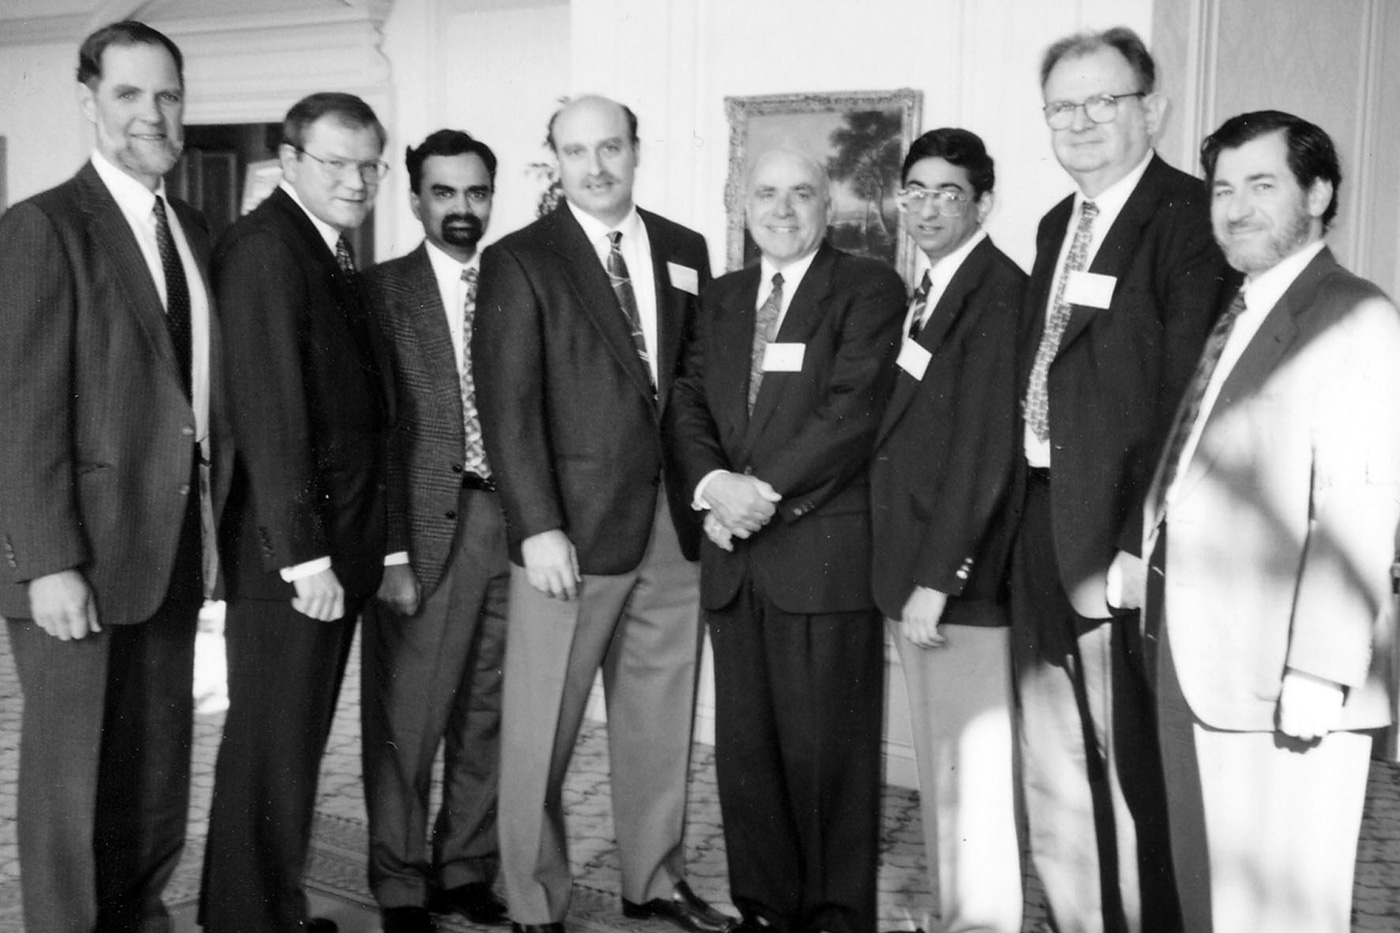 Dr. (Chancellor) Hogan, Husain Wetherell, Dr. Domas, Dr. Williamson, McGuirl, Provost Sukant Tripathy and Dr. Sharlin pose for a group photo. Sukant Tripathy, Professor at the University of Massachusetts Lowell, died on December 12, 2000 in a swimming accident in Hawaii after lecturing at a conference of the Polymer Chemistry Division of the American Chemical Society.